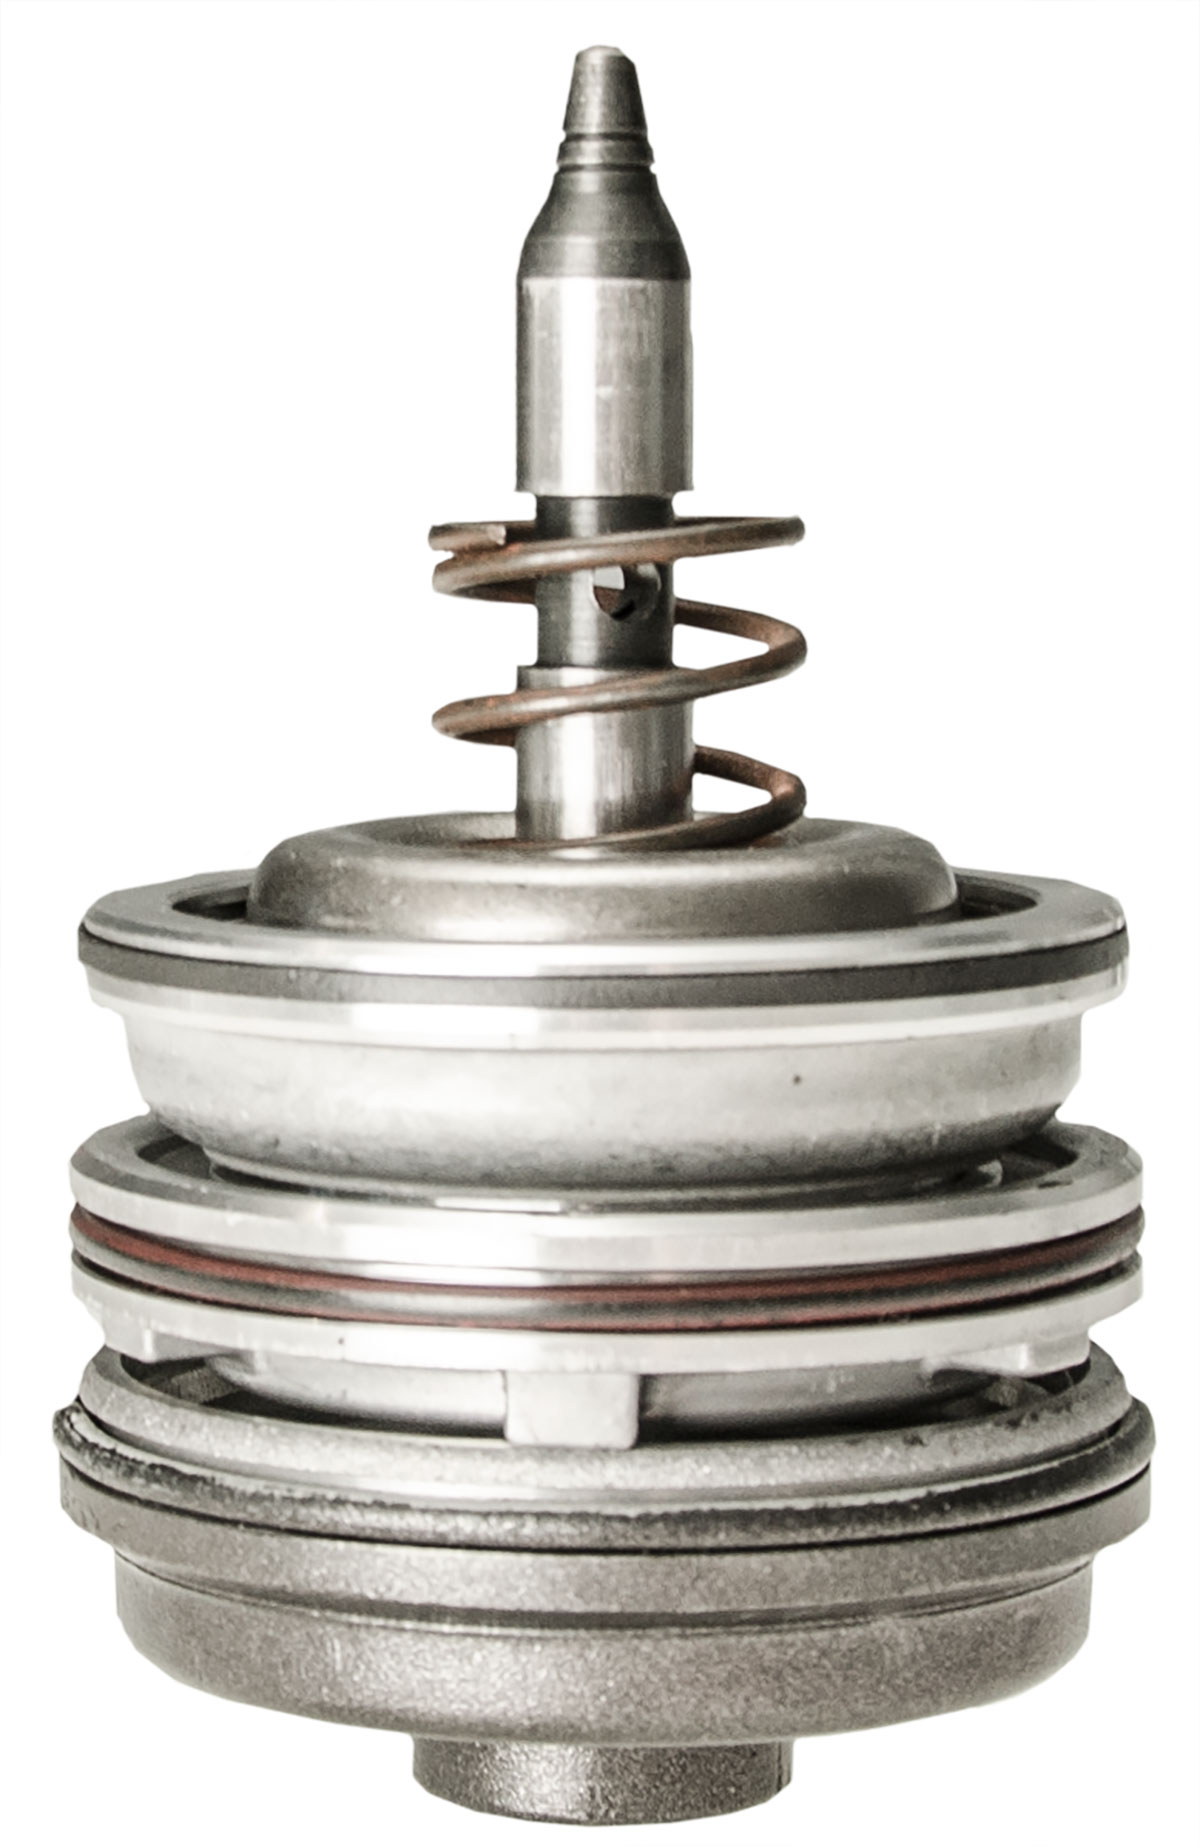 Automatic Transmission Band Servo Piston